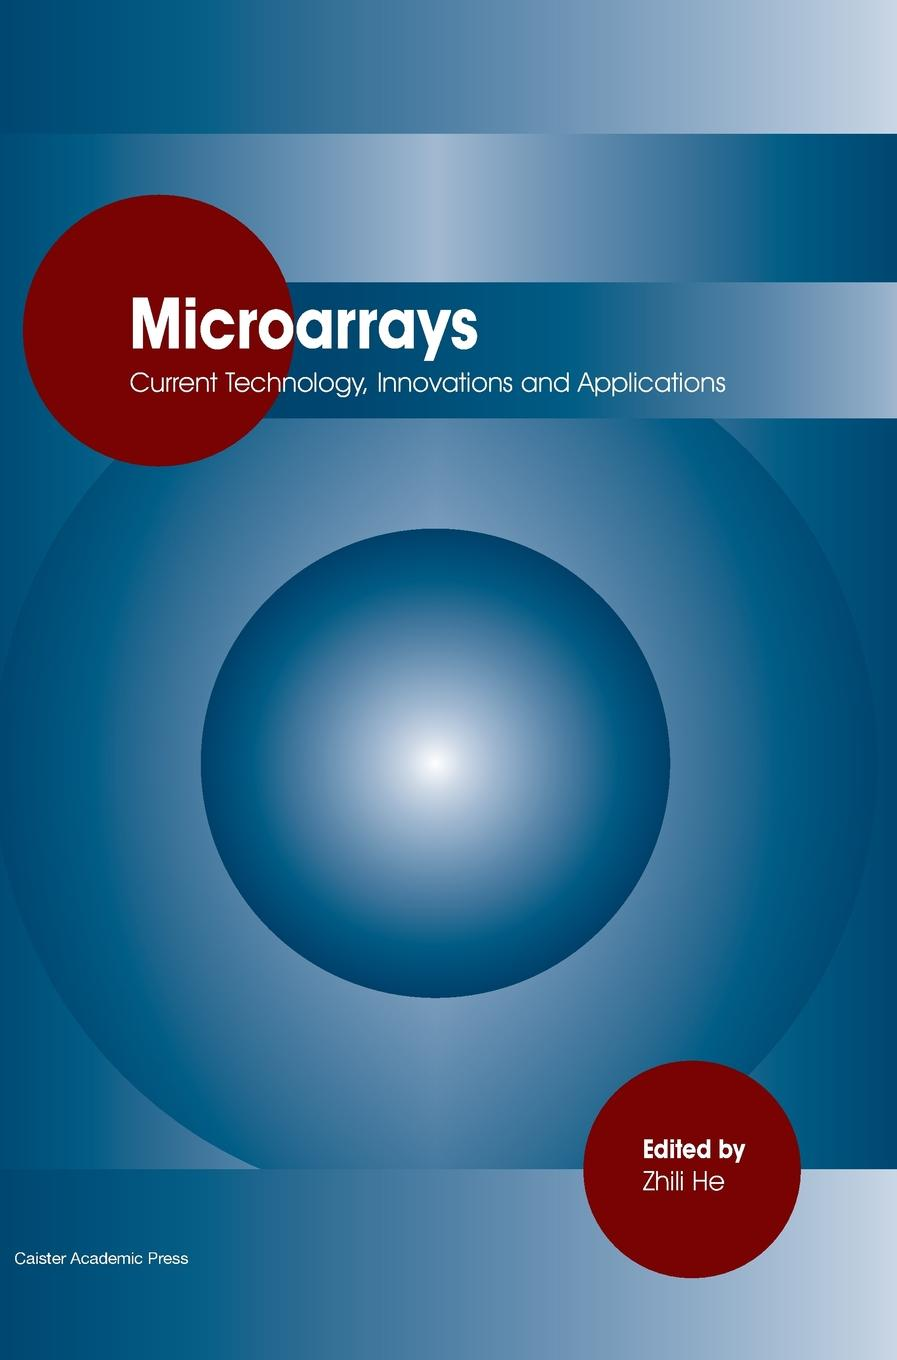 Microarrays: Current Technology, Innovations and Applications